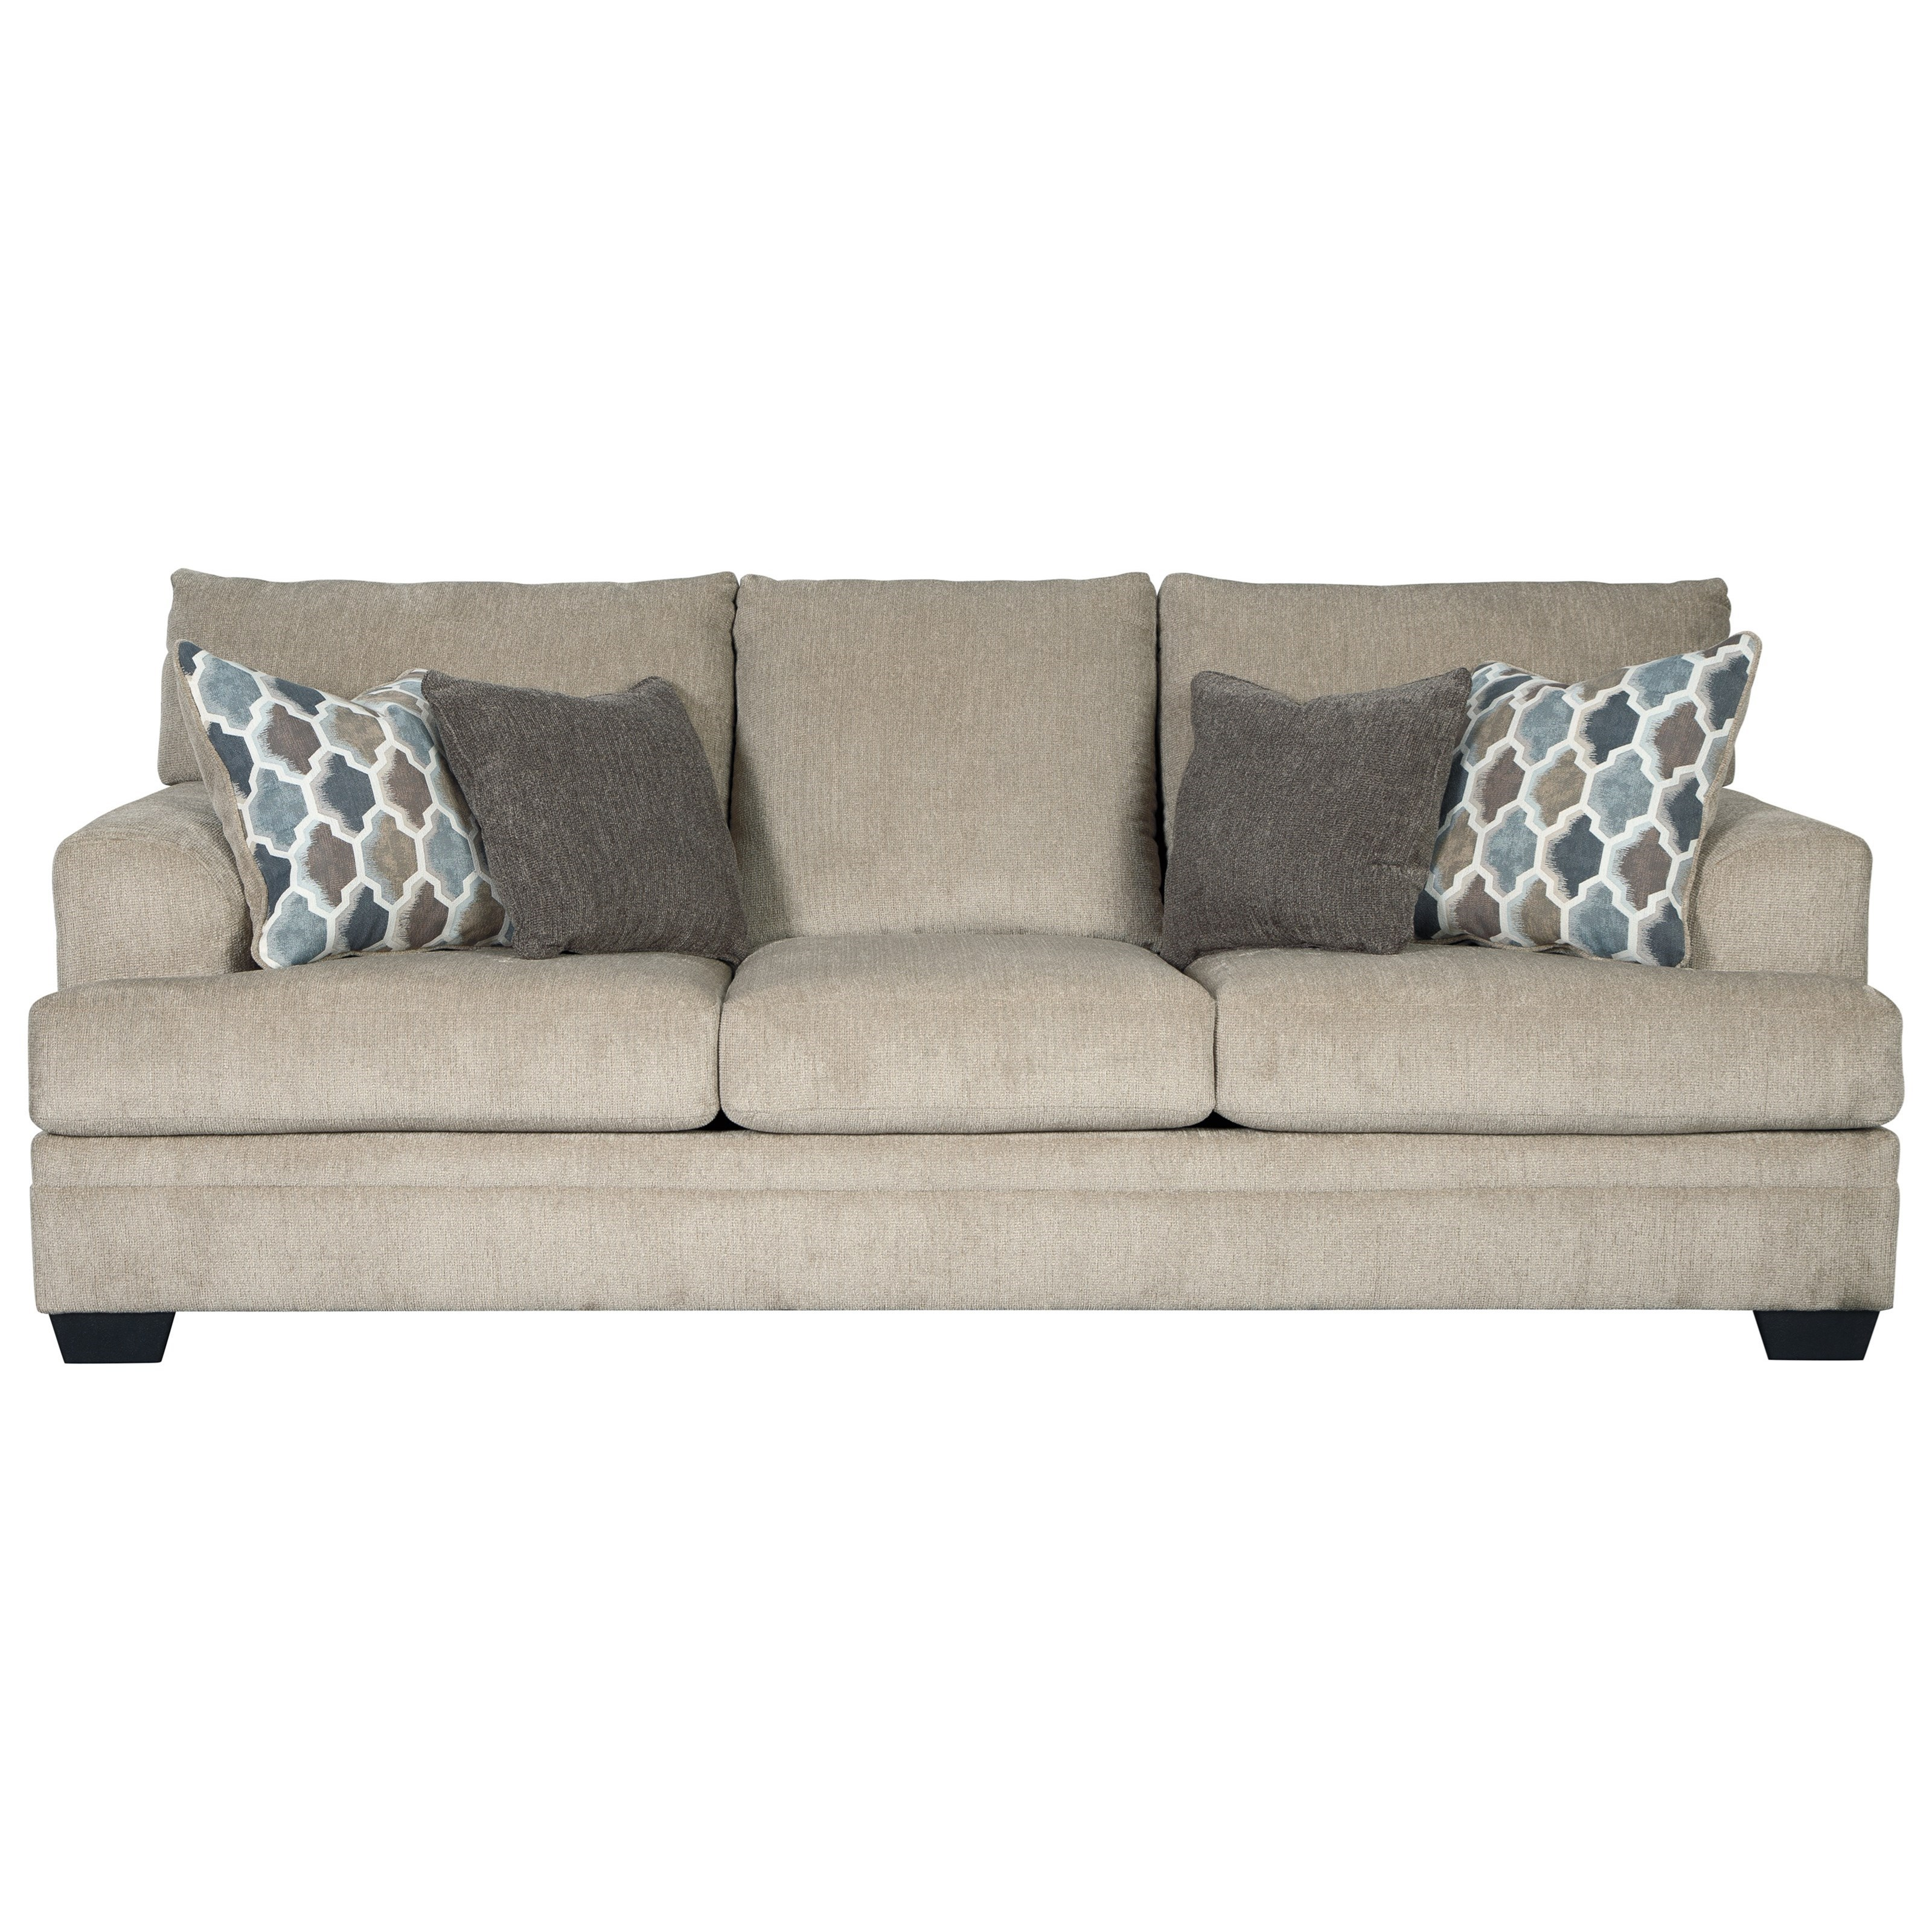 Dorsten Contemporary Queen Sofa Sleeper by Signature Design by Ashley at  Becker Furniture World